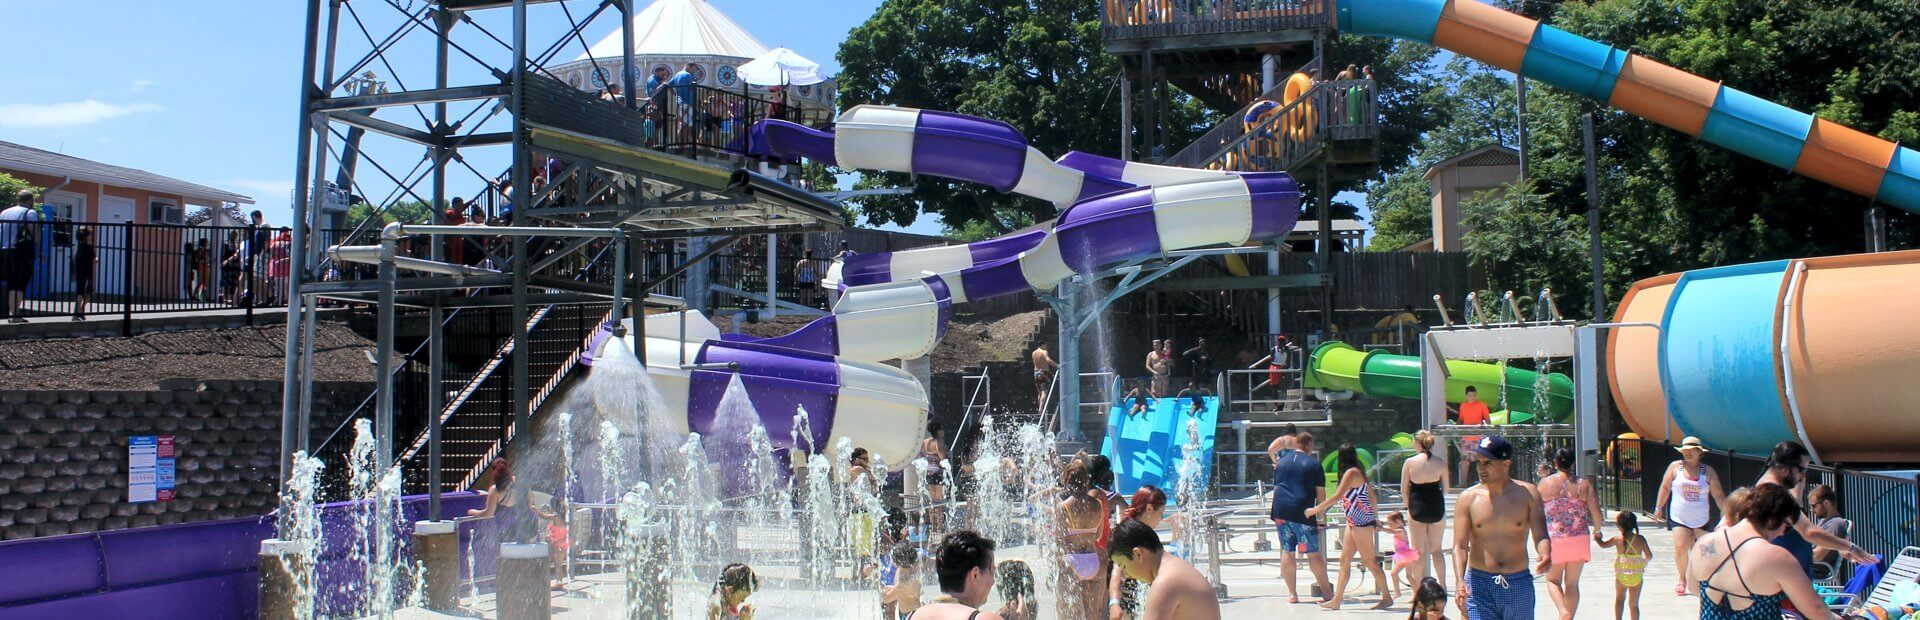 Get Soaked on the Soak Zone at Seabreeeze.